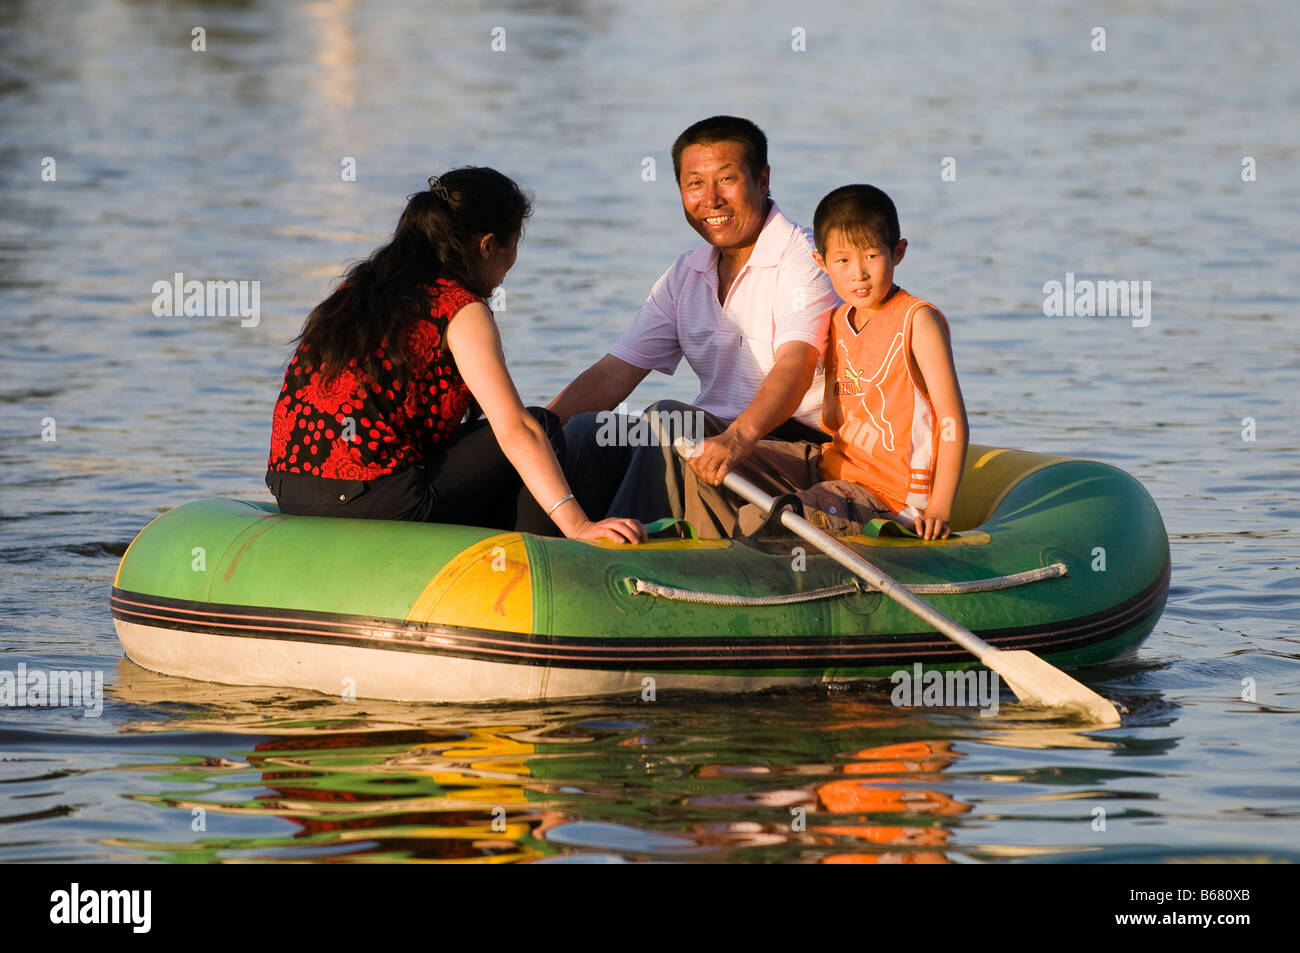 Mother and father with one child row boat in park Xiwuzhumuqinqi Inner Mongolia China - Stock Image